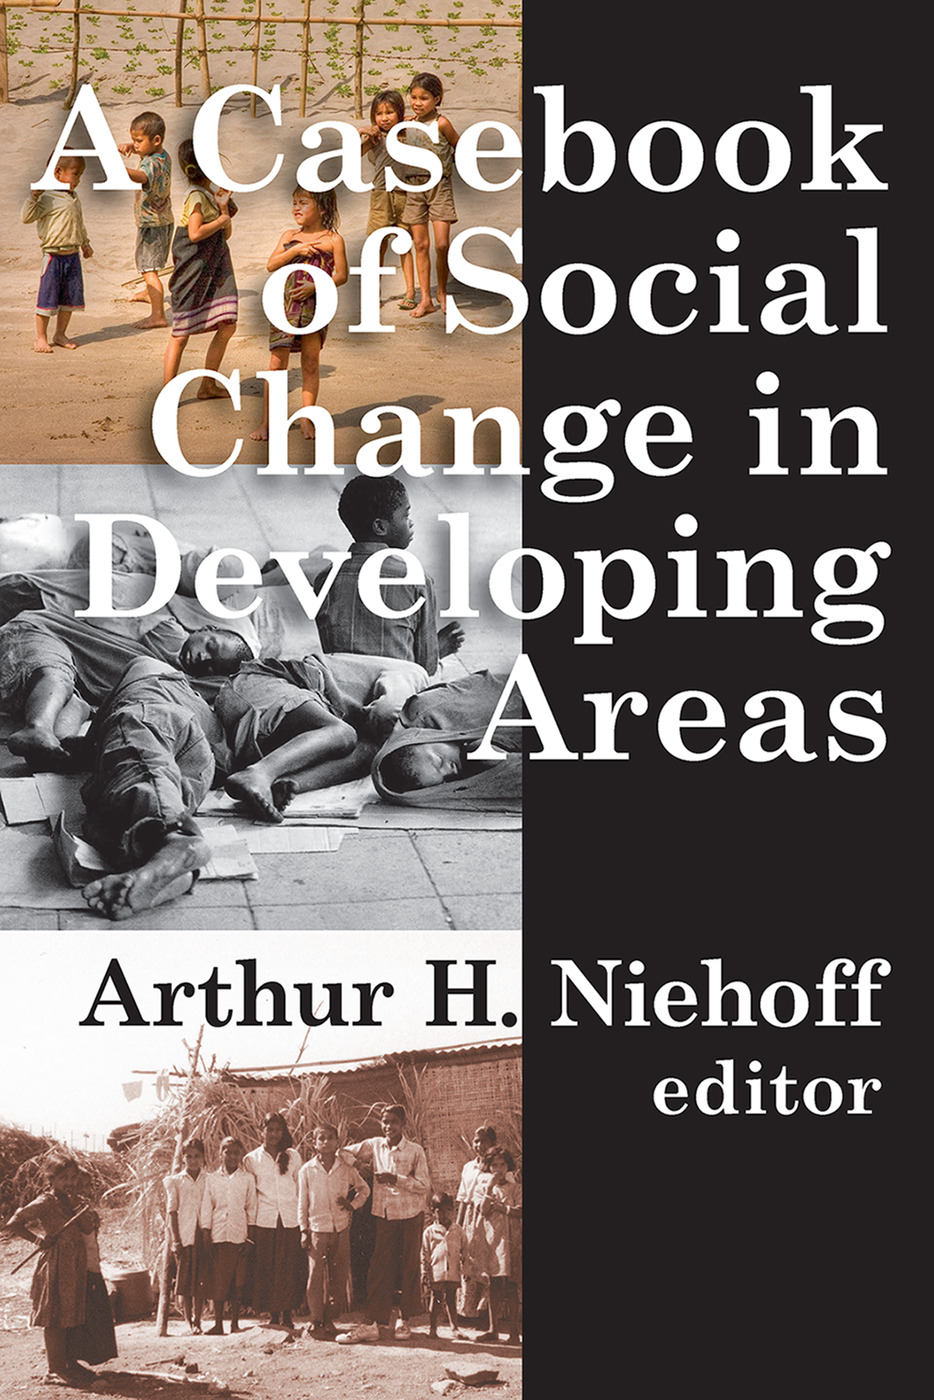 Casebook of Social Change in Developing Areas